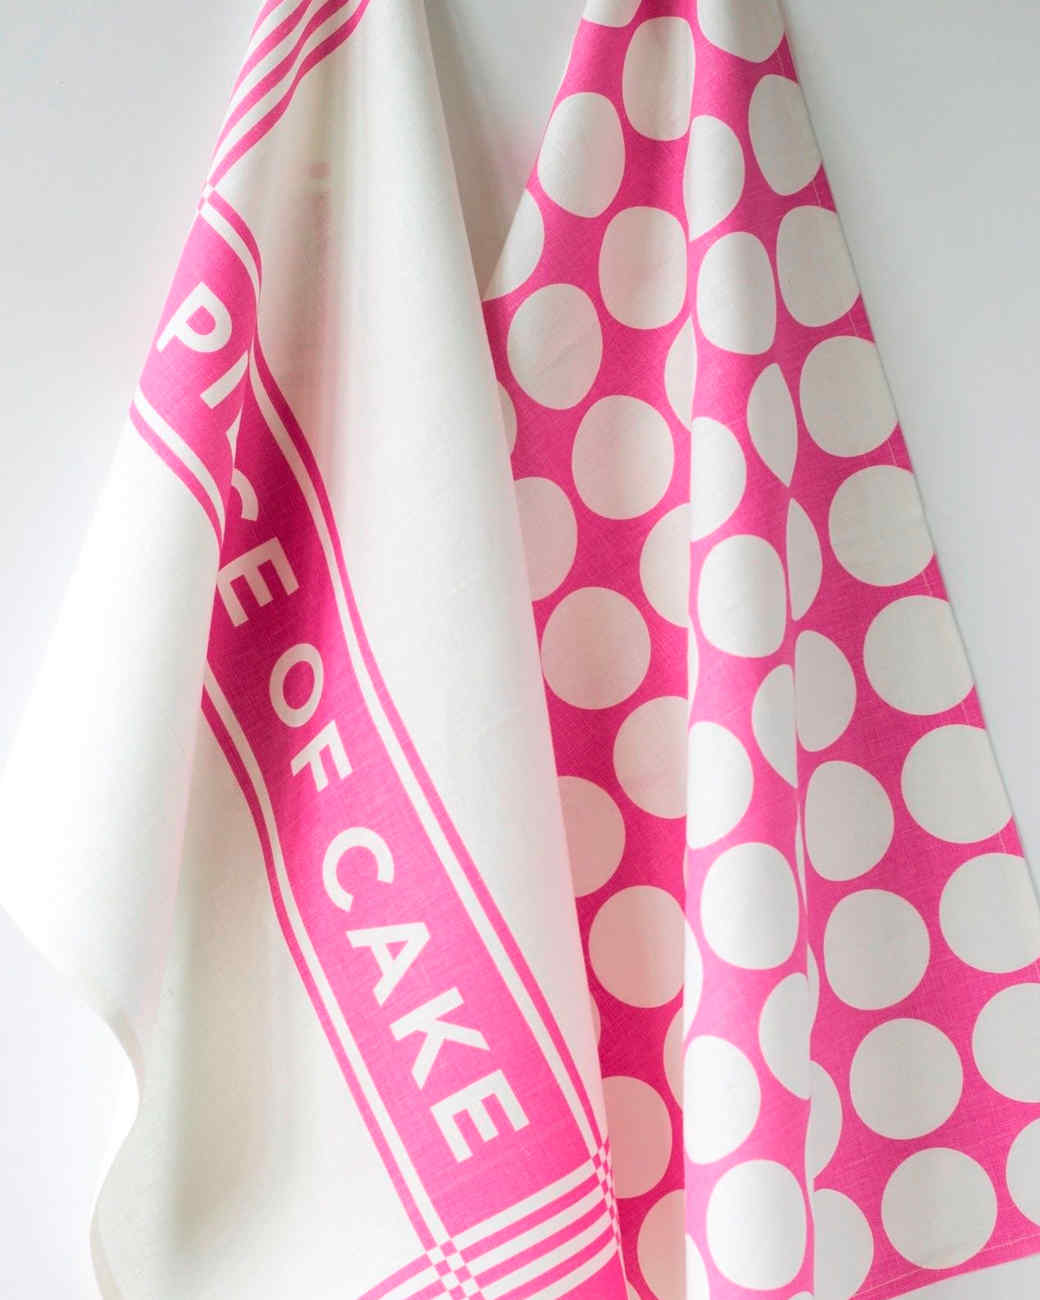 piece-of-cake-towels-studiopatro-0414.jpg